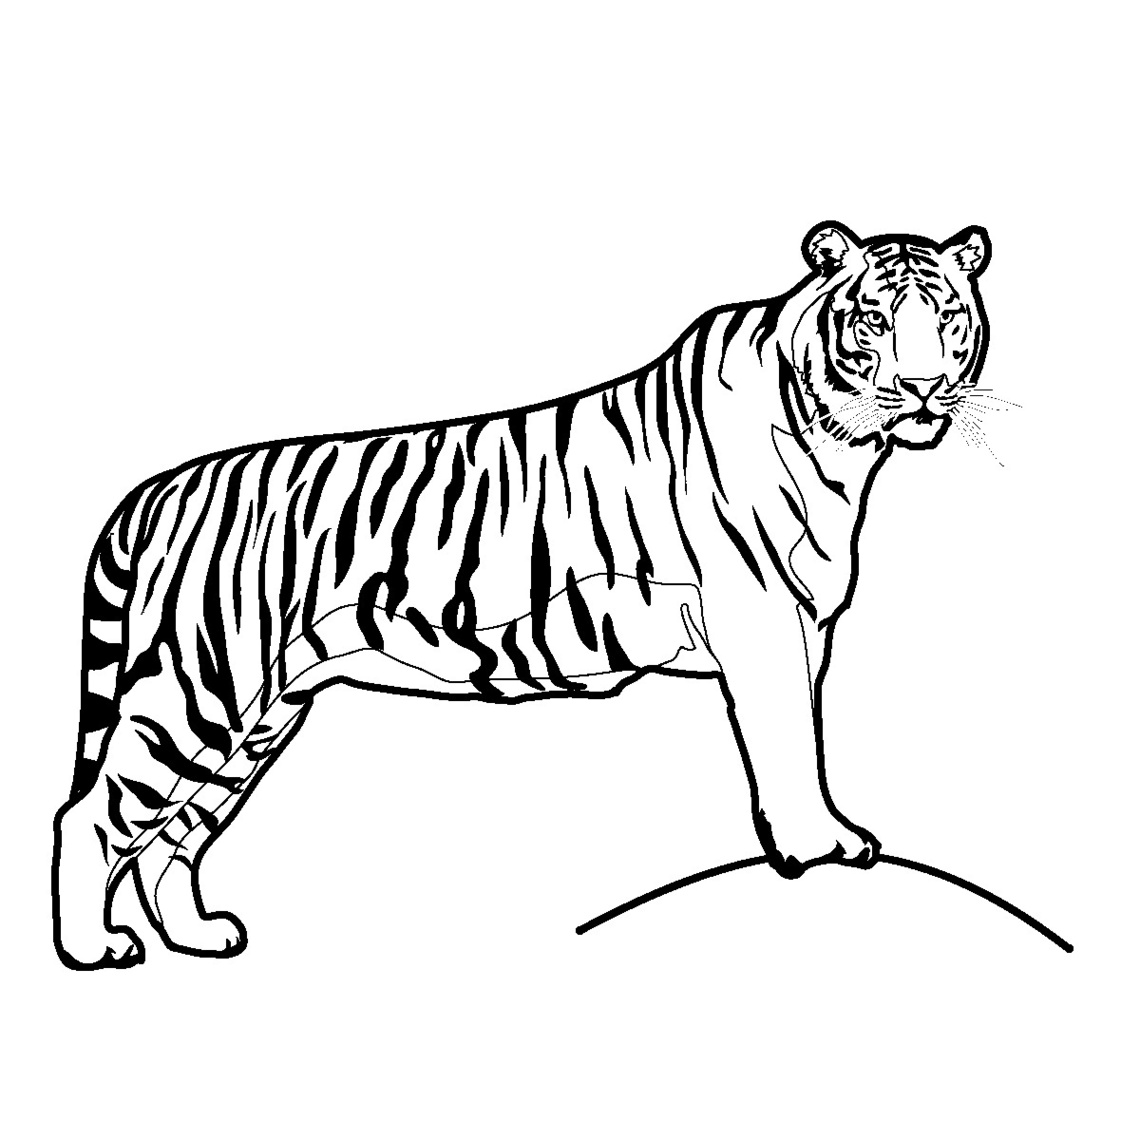 Tiiger clipart black and white #15